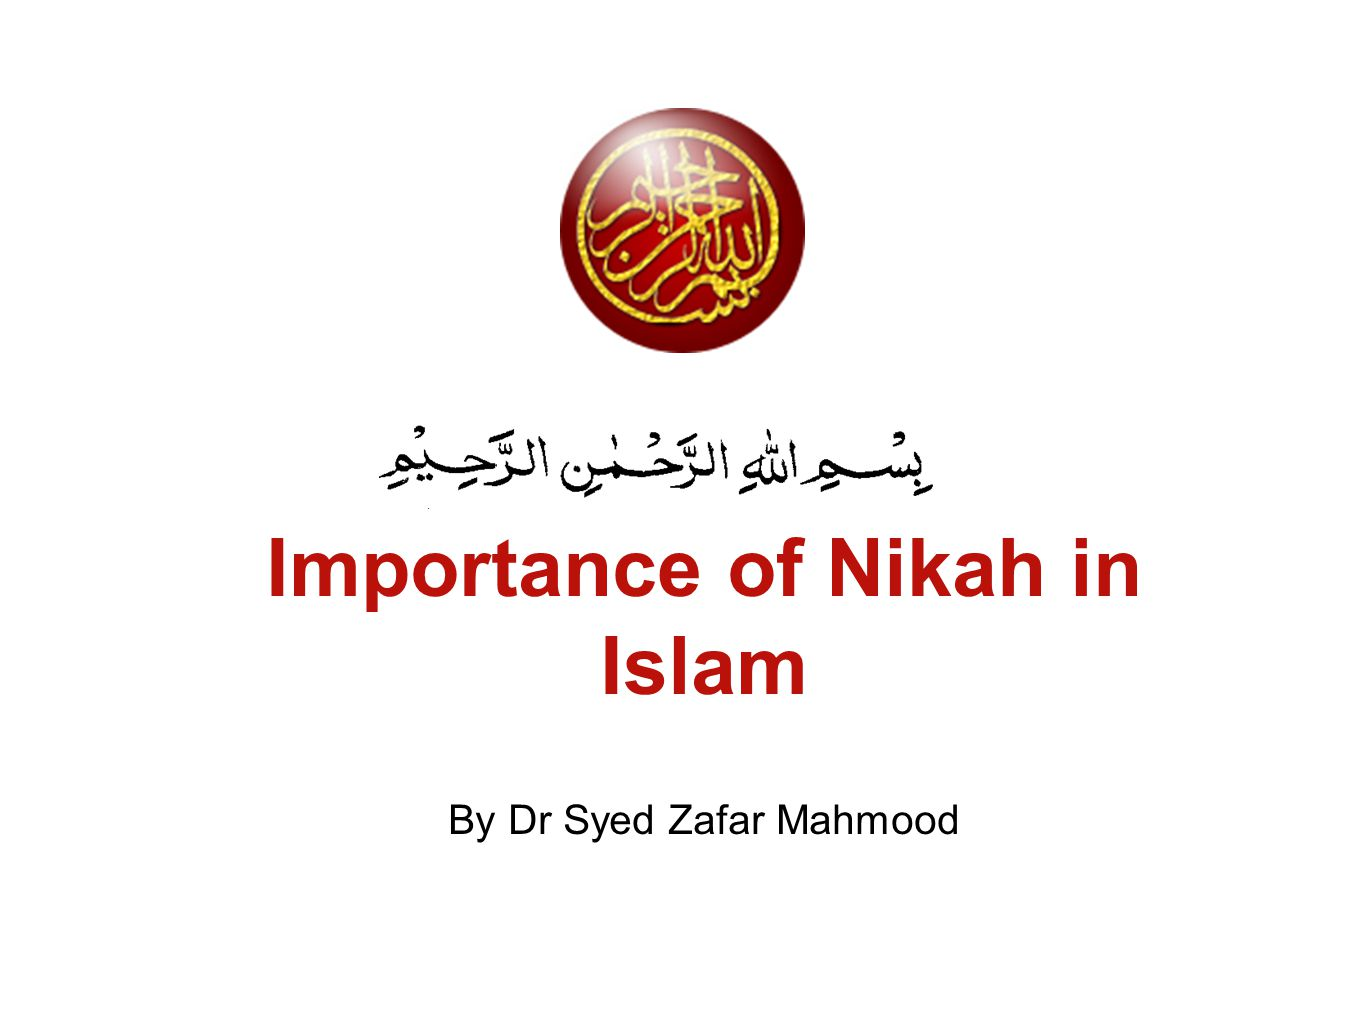 Importance of Nikah in Islam